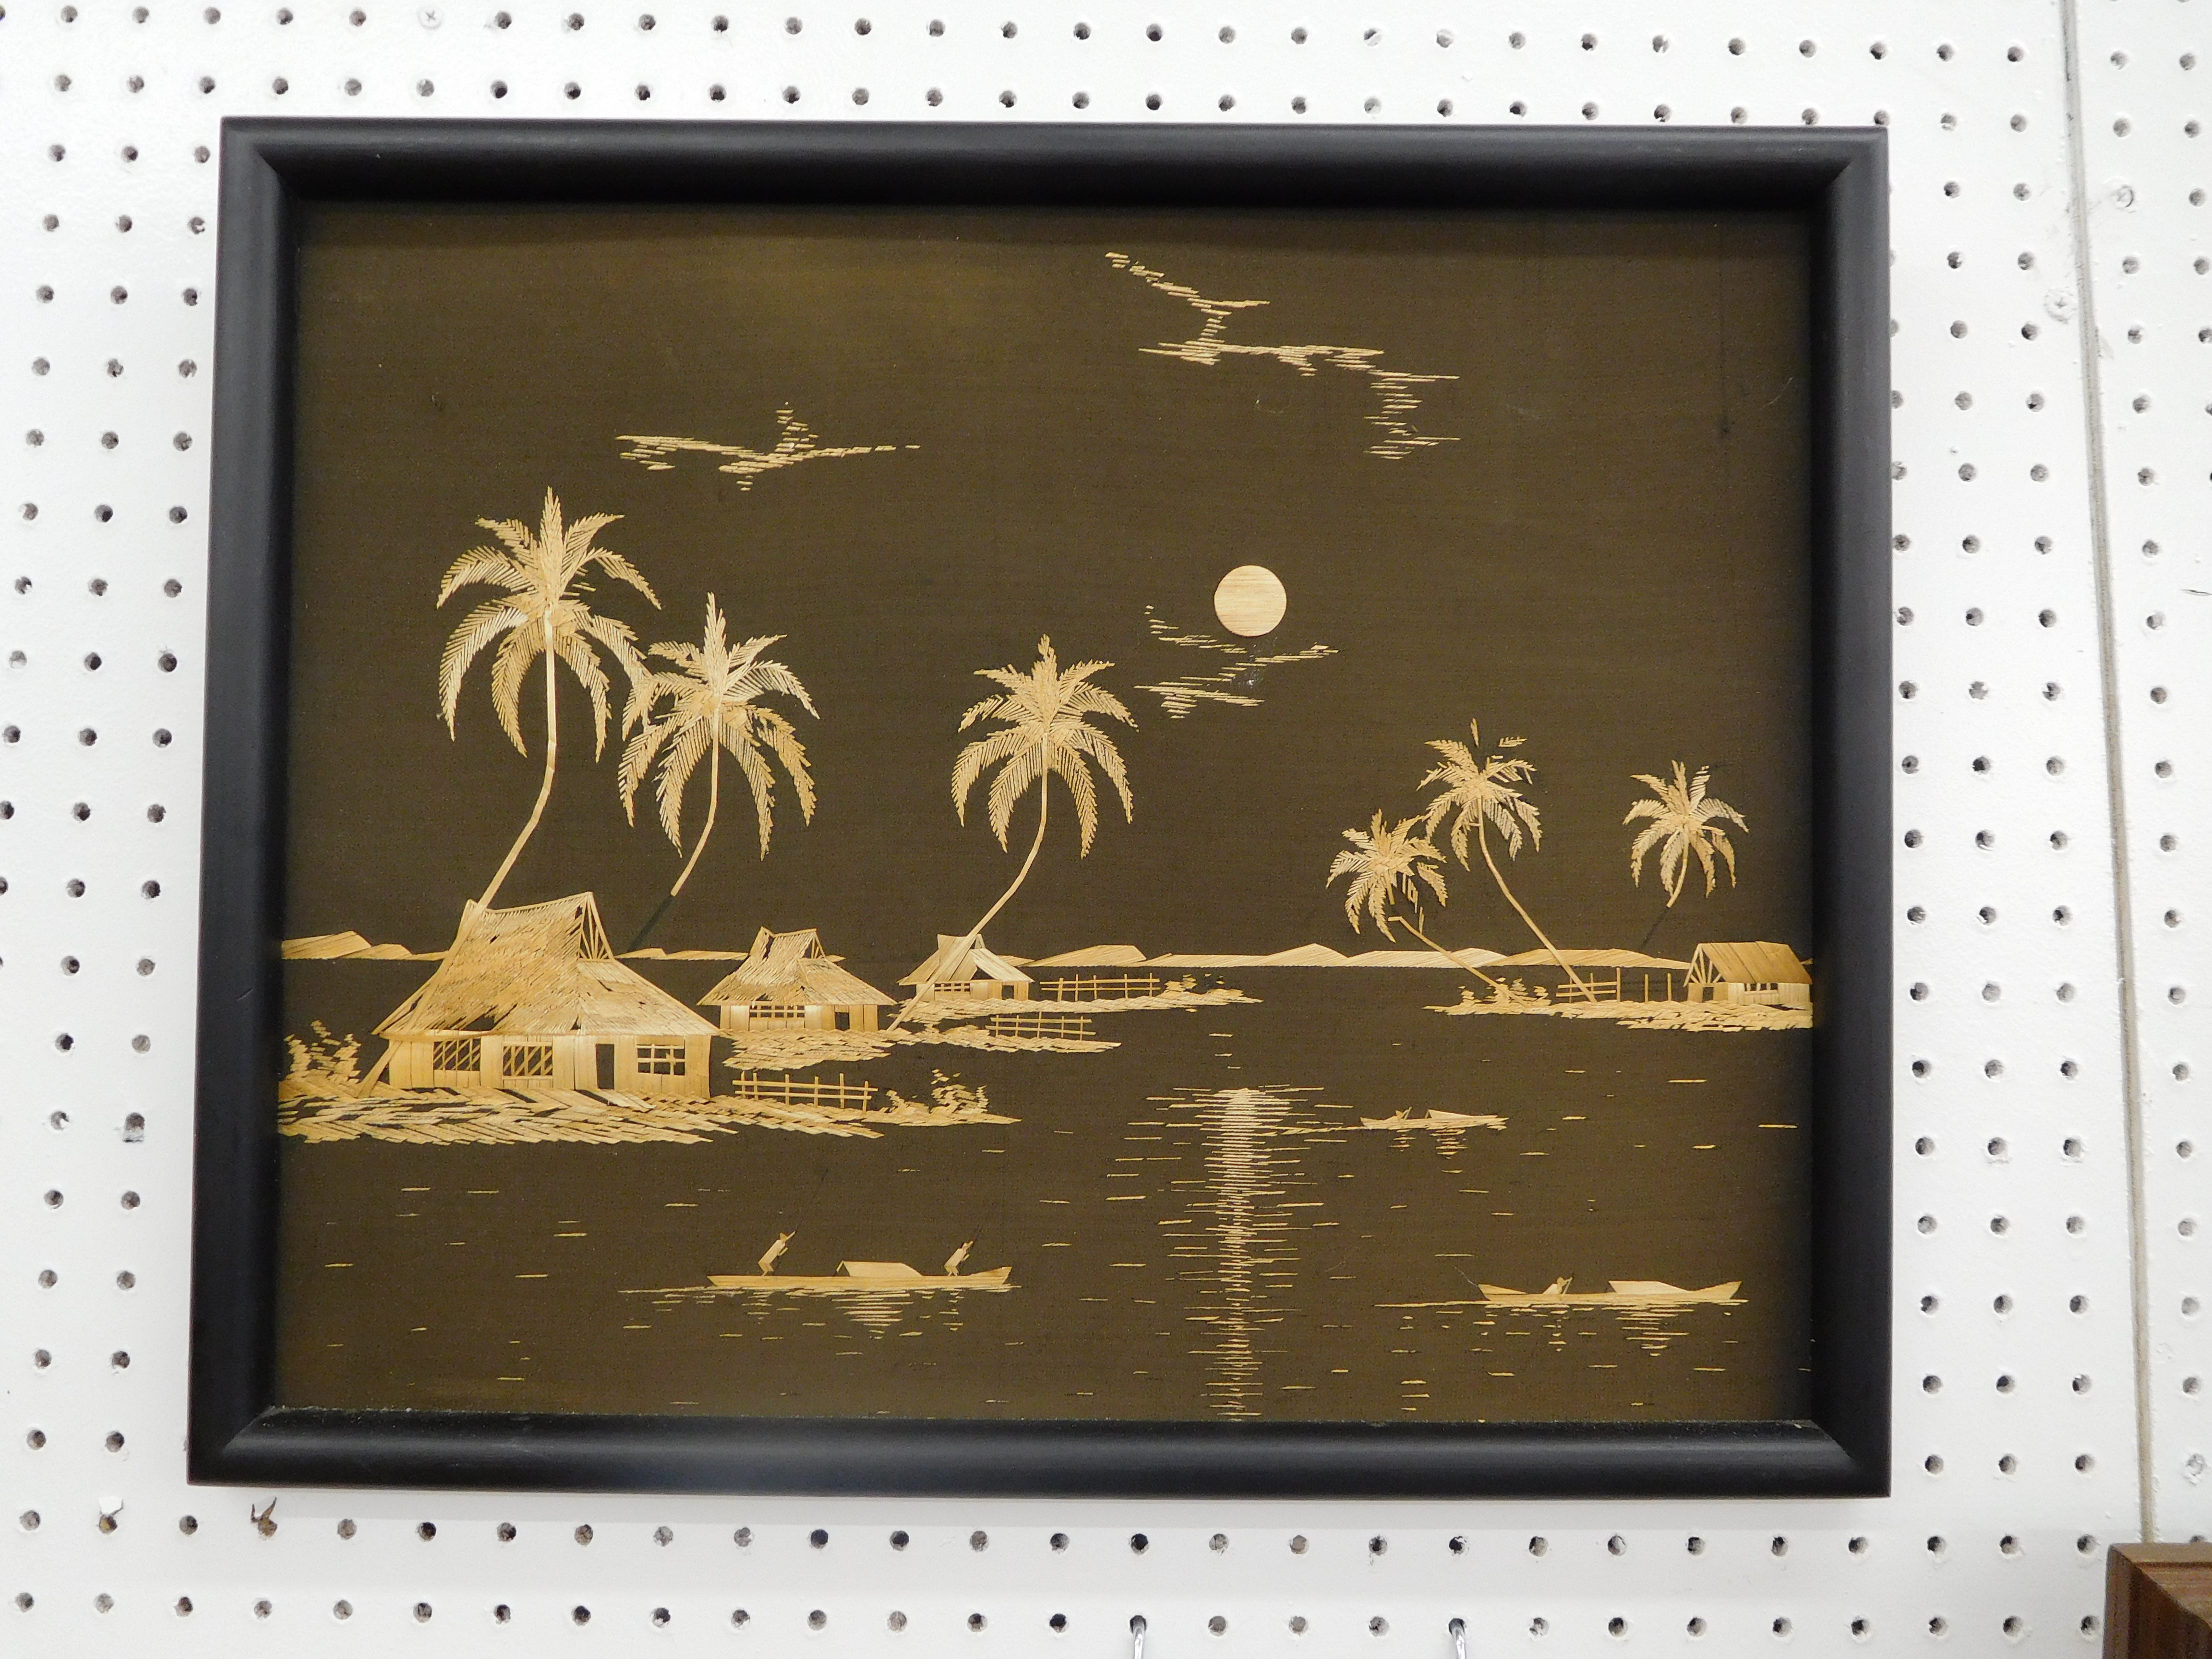 Framed Asian Art - Huts and Palm Trees in the Moonlight